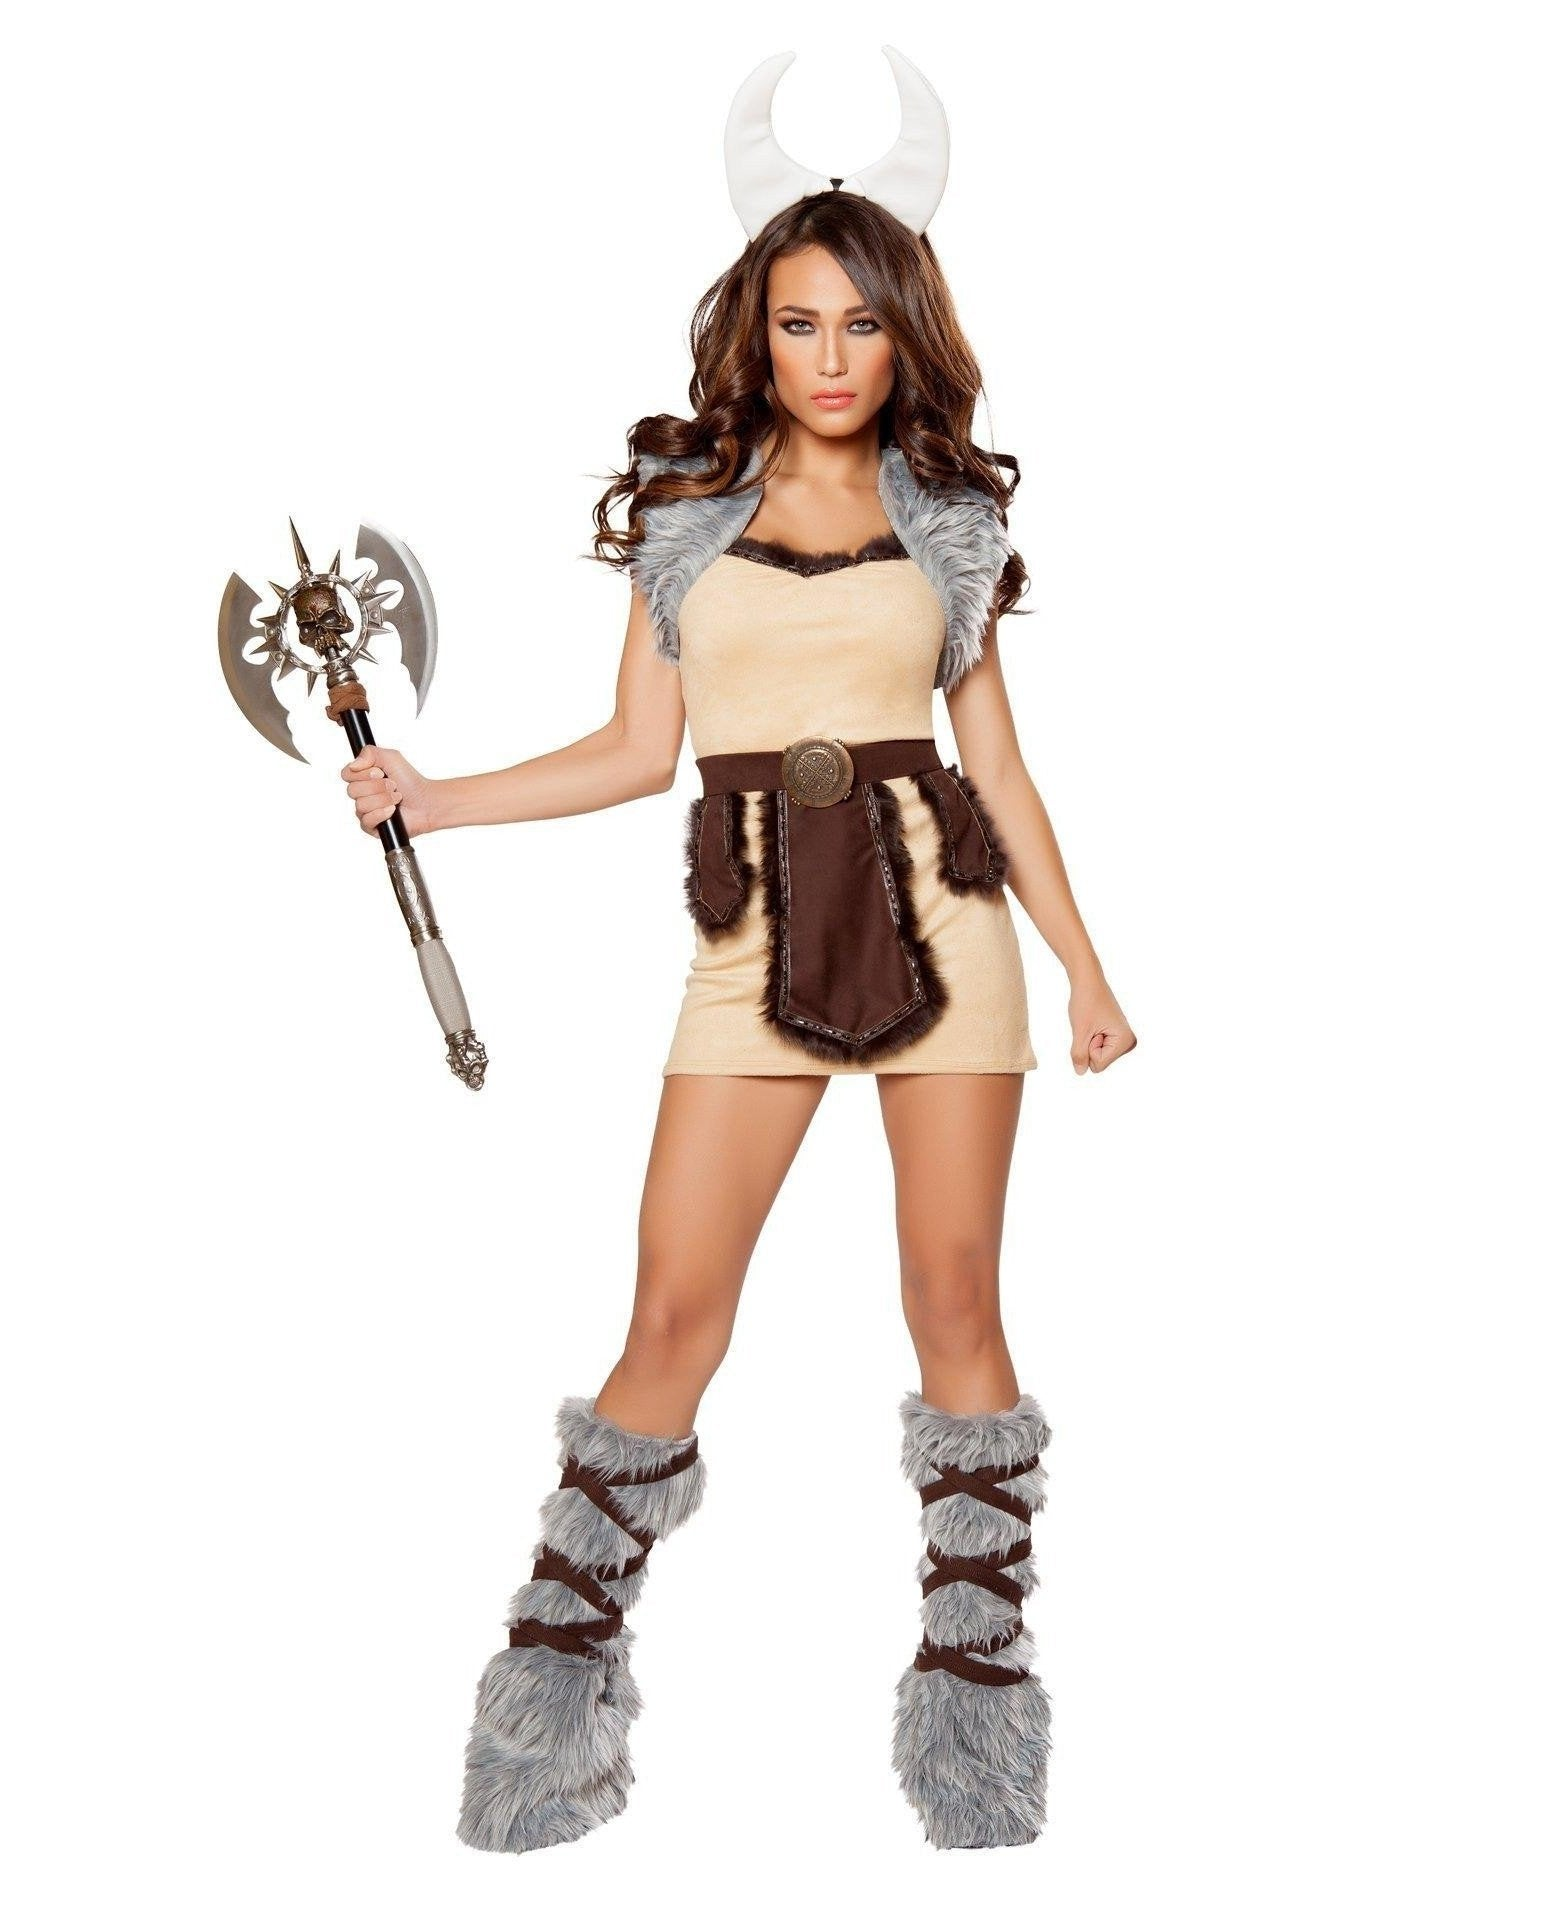 Vicious Viking Maiden Costume Costumes Size LargeColor Beige/Brown/GreyNakees